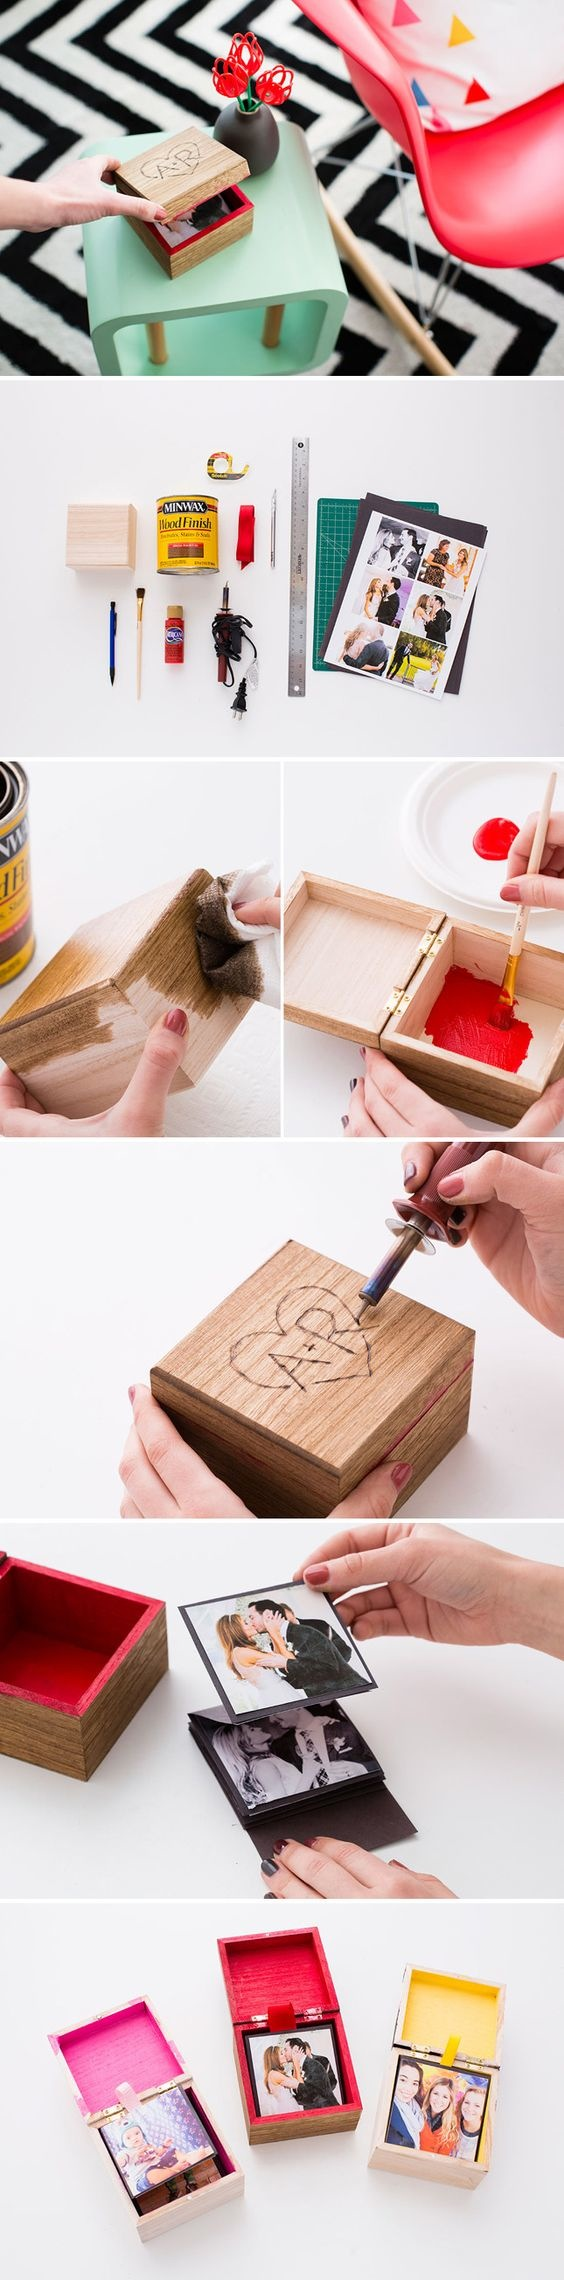 27-diy-pop-up-photo-box